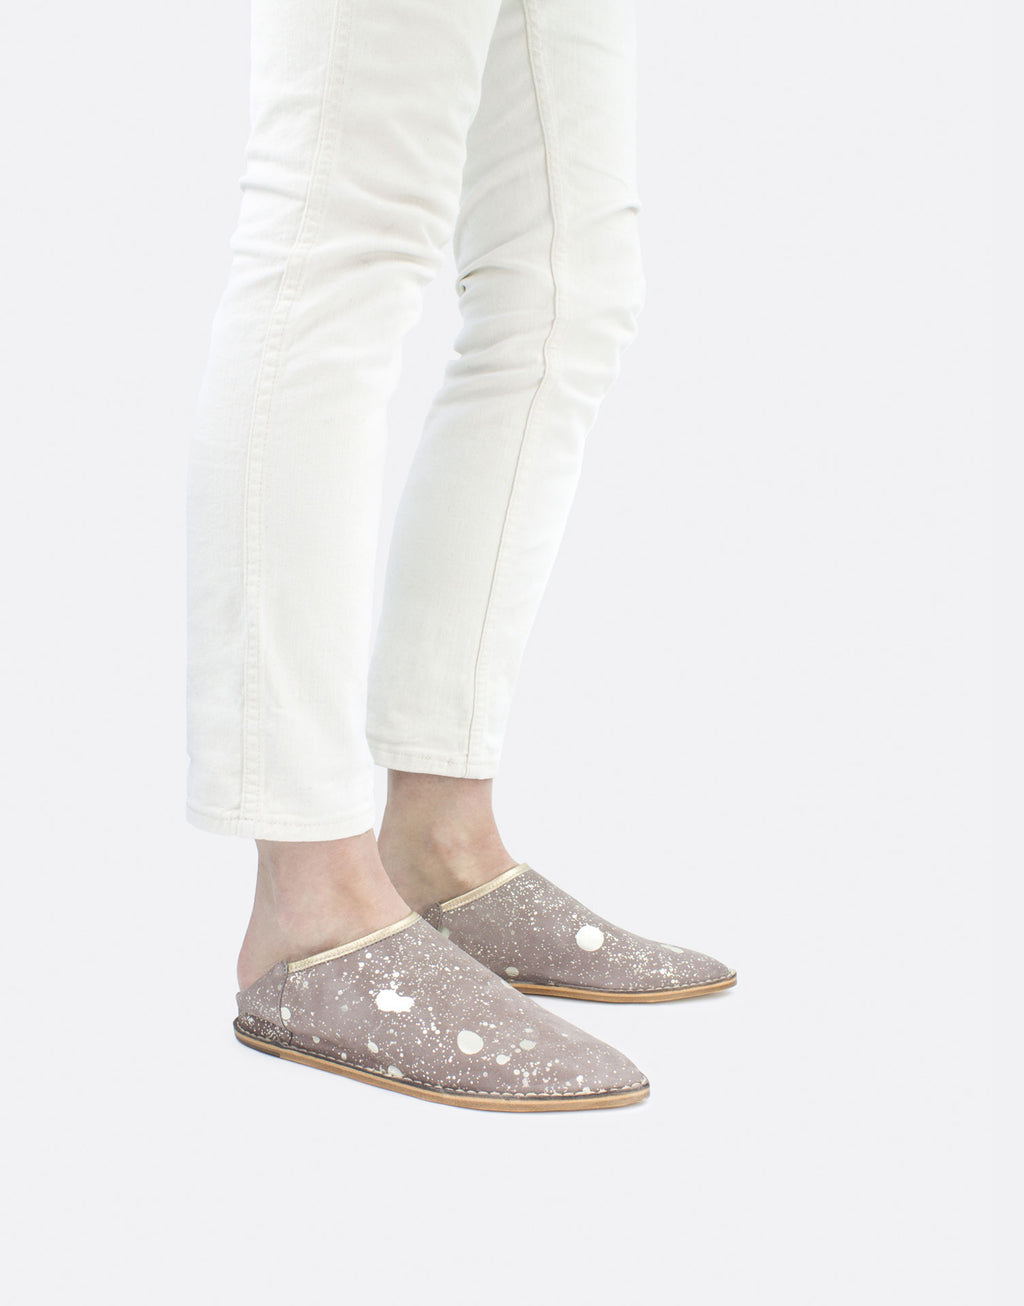 Casual effortless slip on suede leather shoe with foil splashes by designer Georgina Goodman